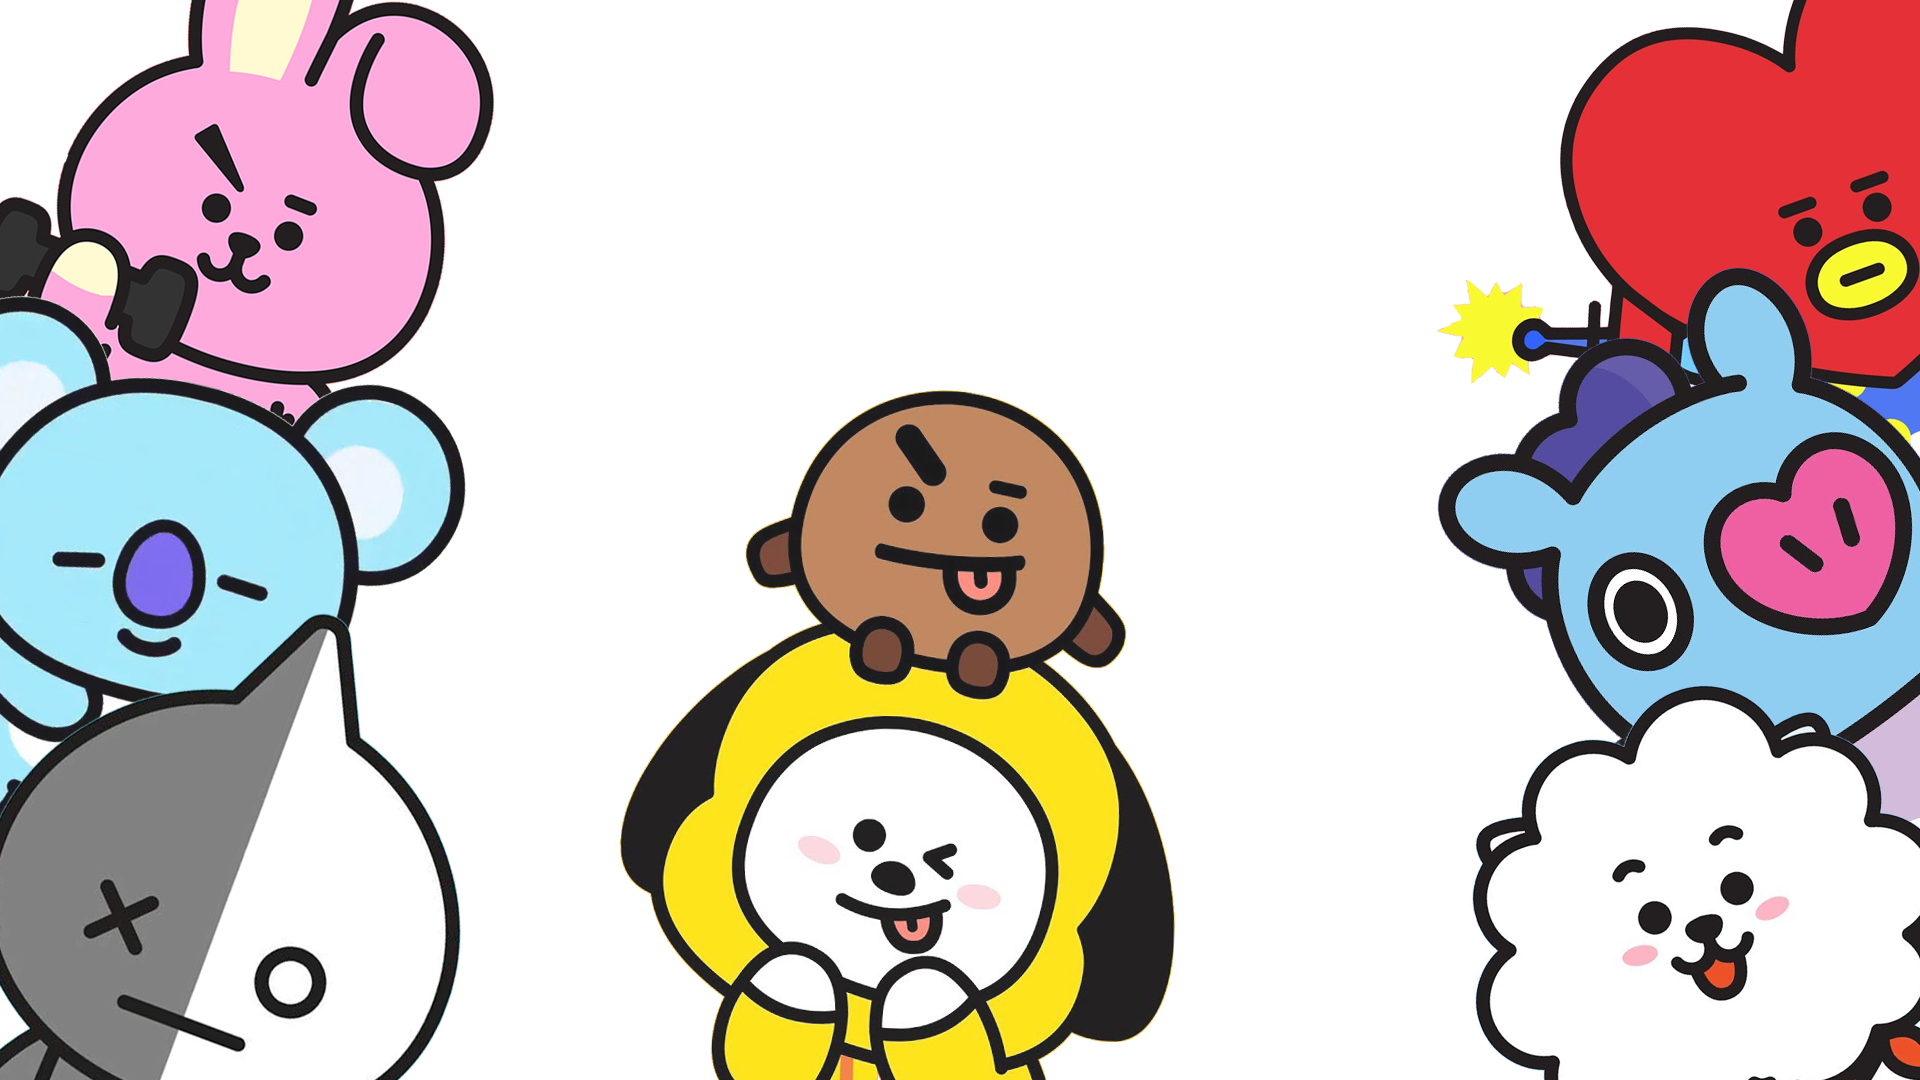 Bt21 Desktop Hd Wallpaper Kertas Dinding Komputer Desktop Wallpaper Lucu